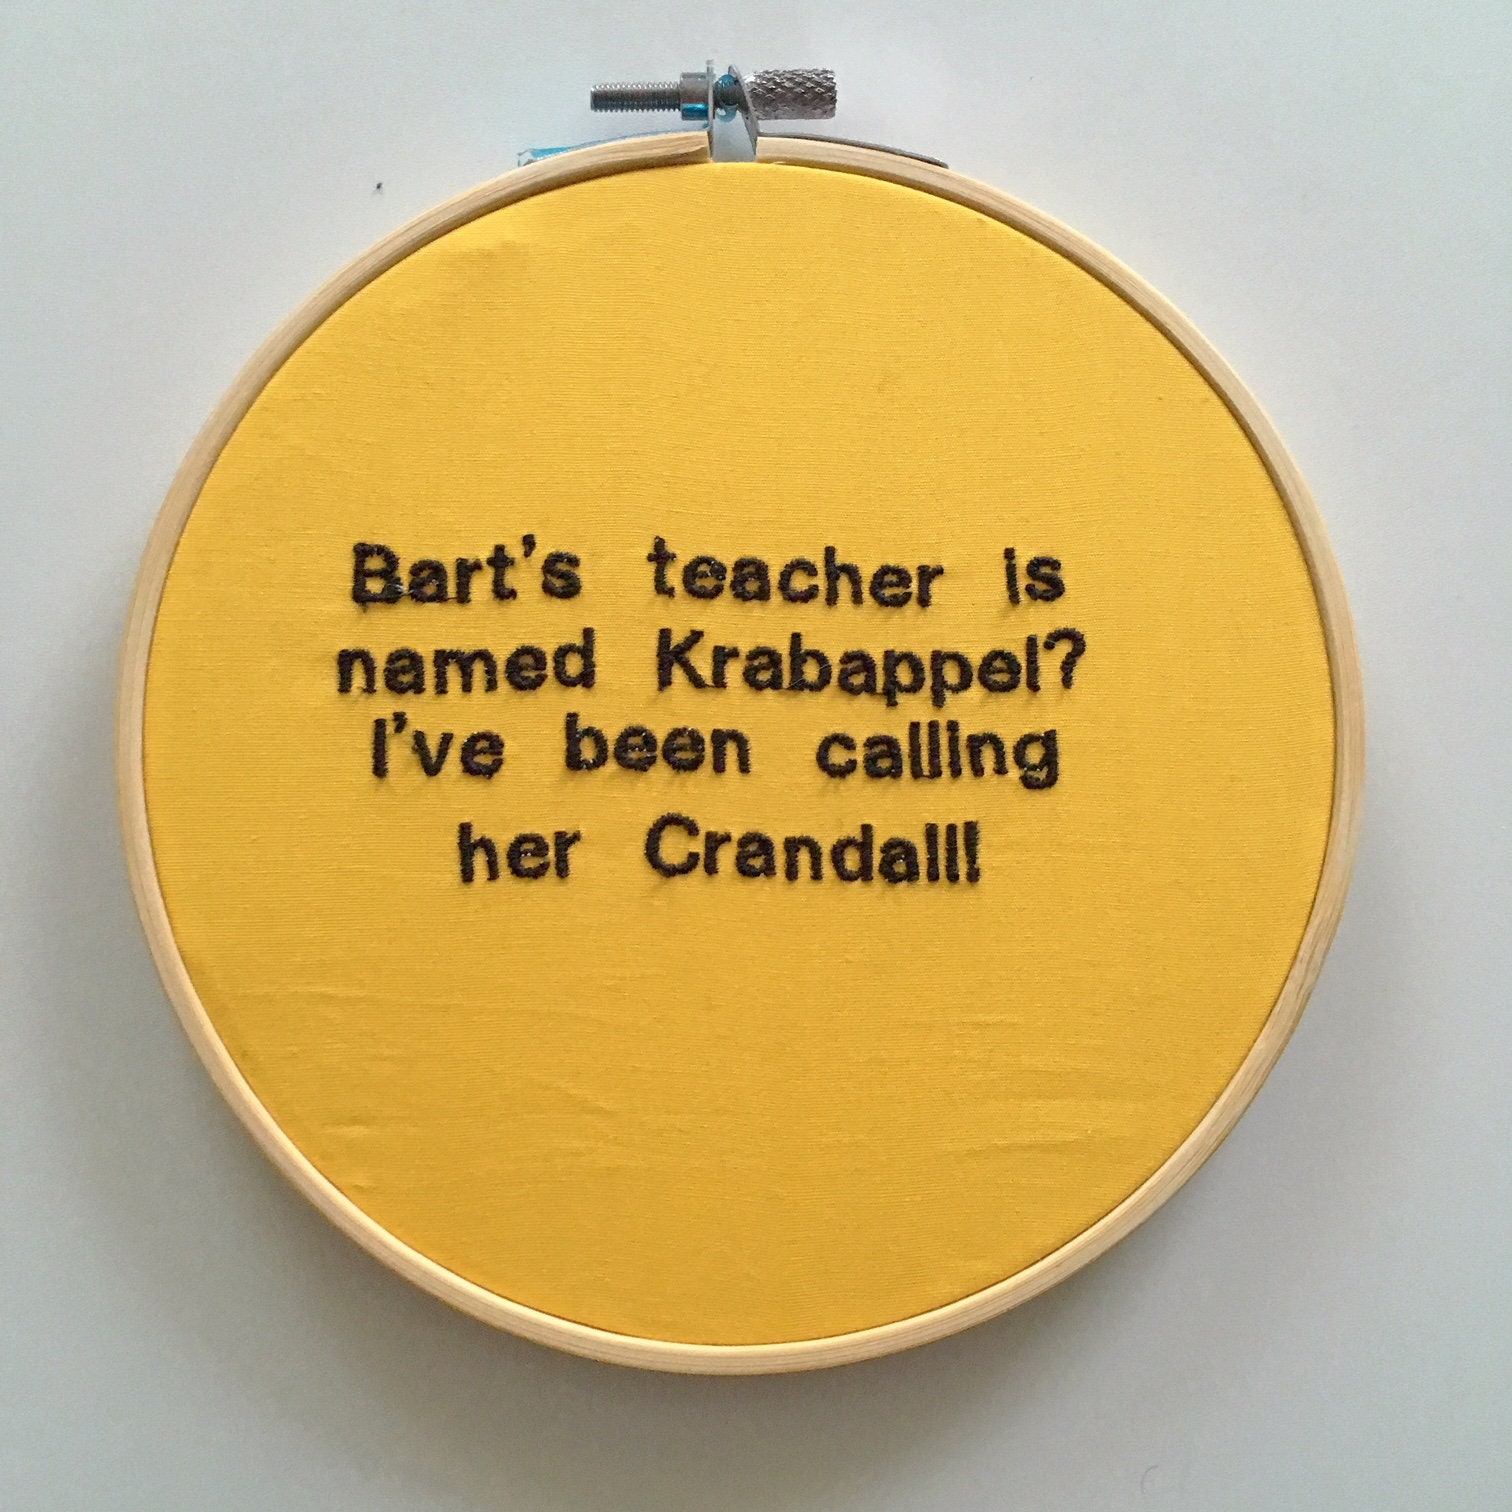 KRABAPPEL CRANDALL The Simpsons Embroidery Hoop Wall Art | Etsy